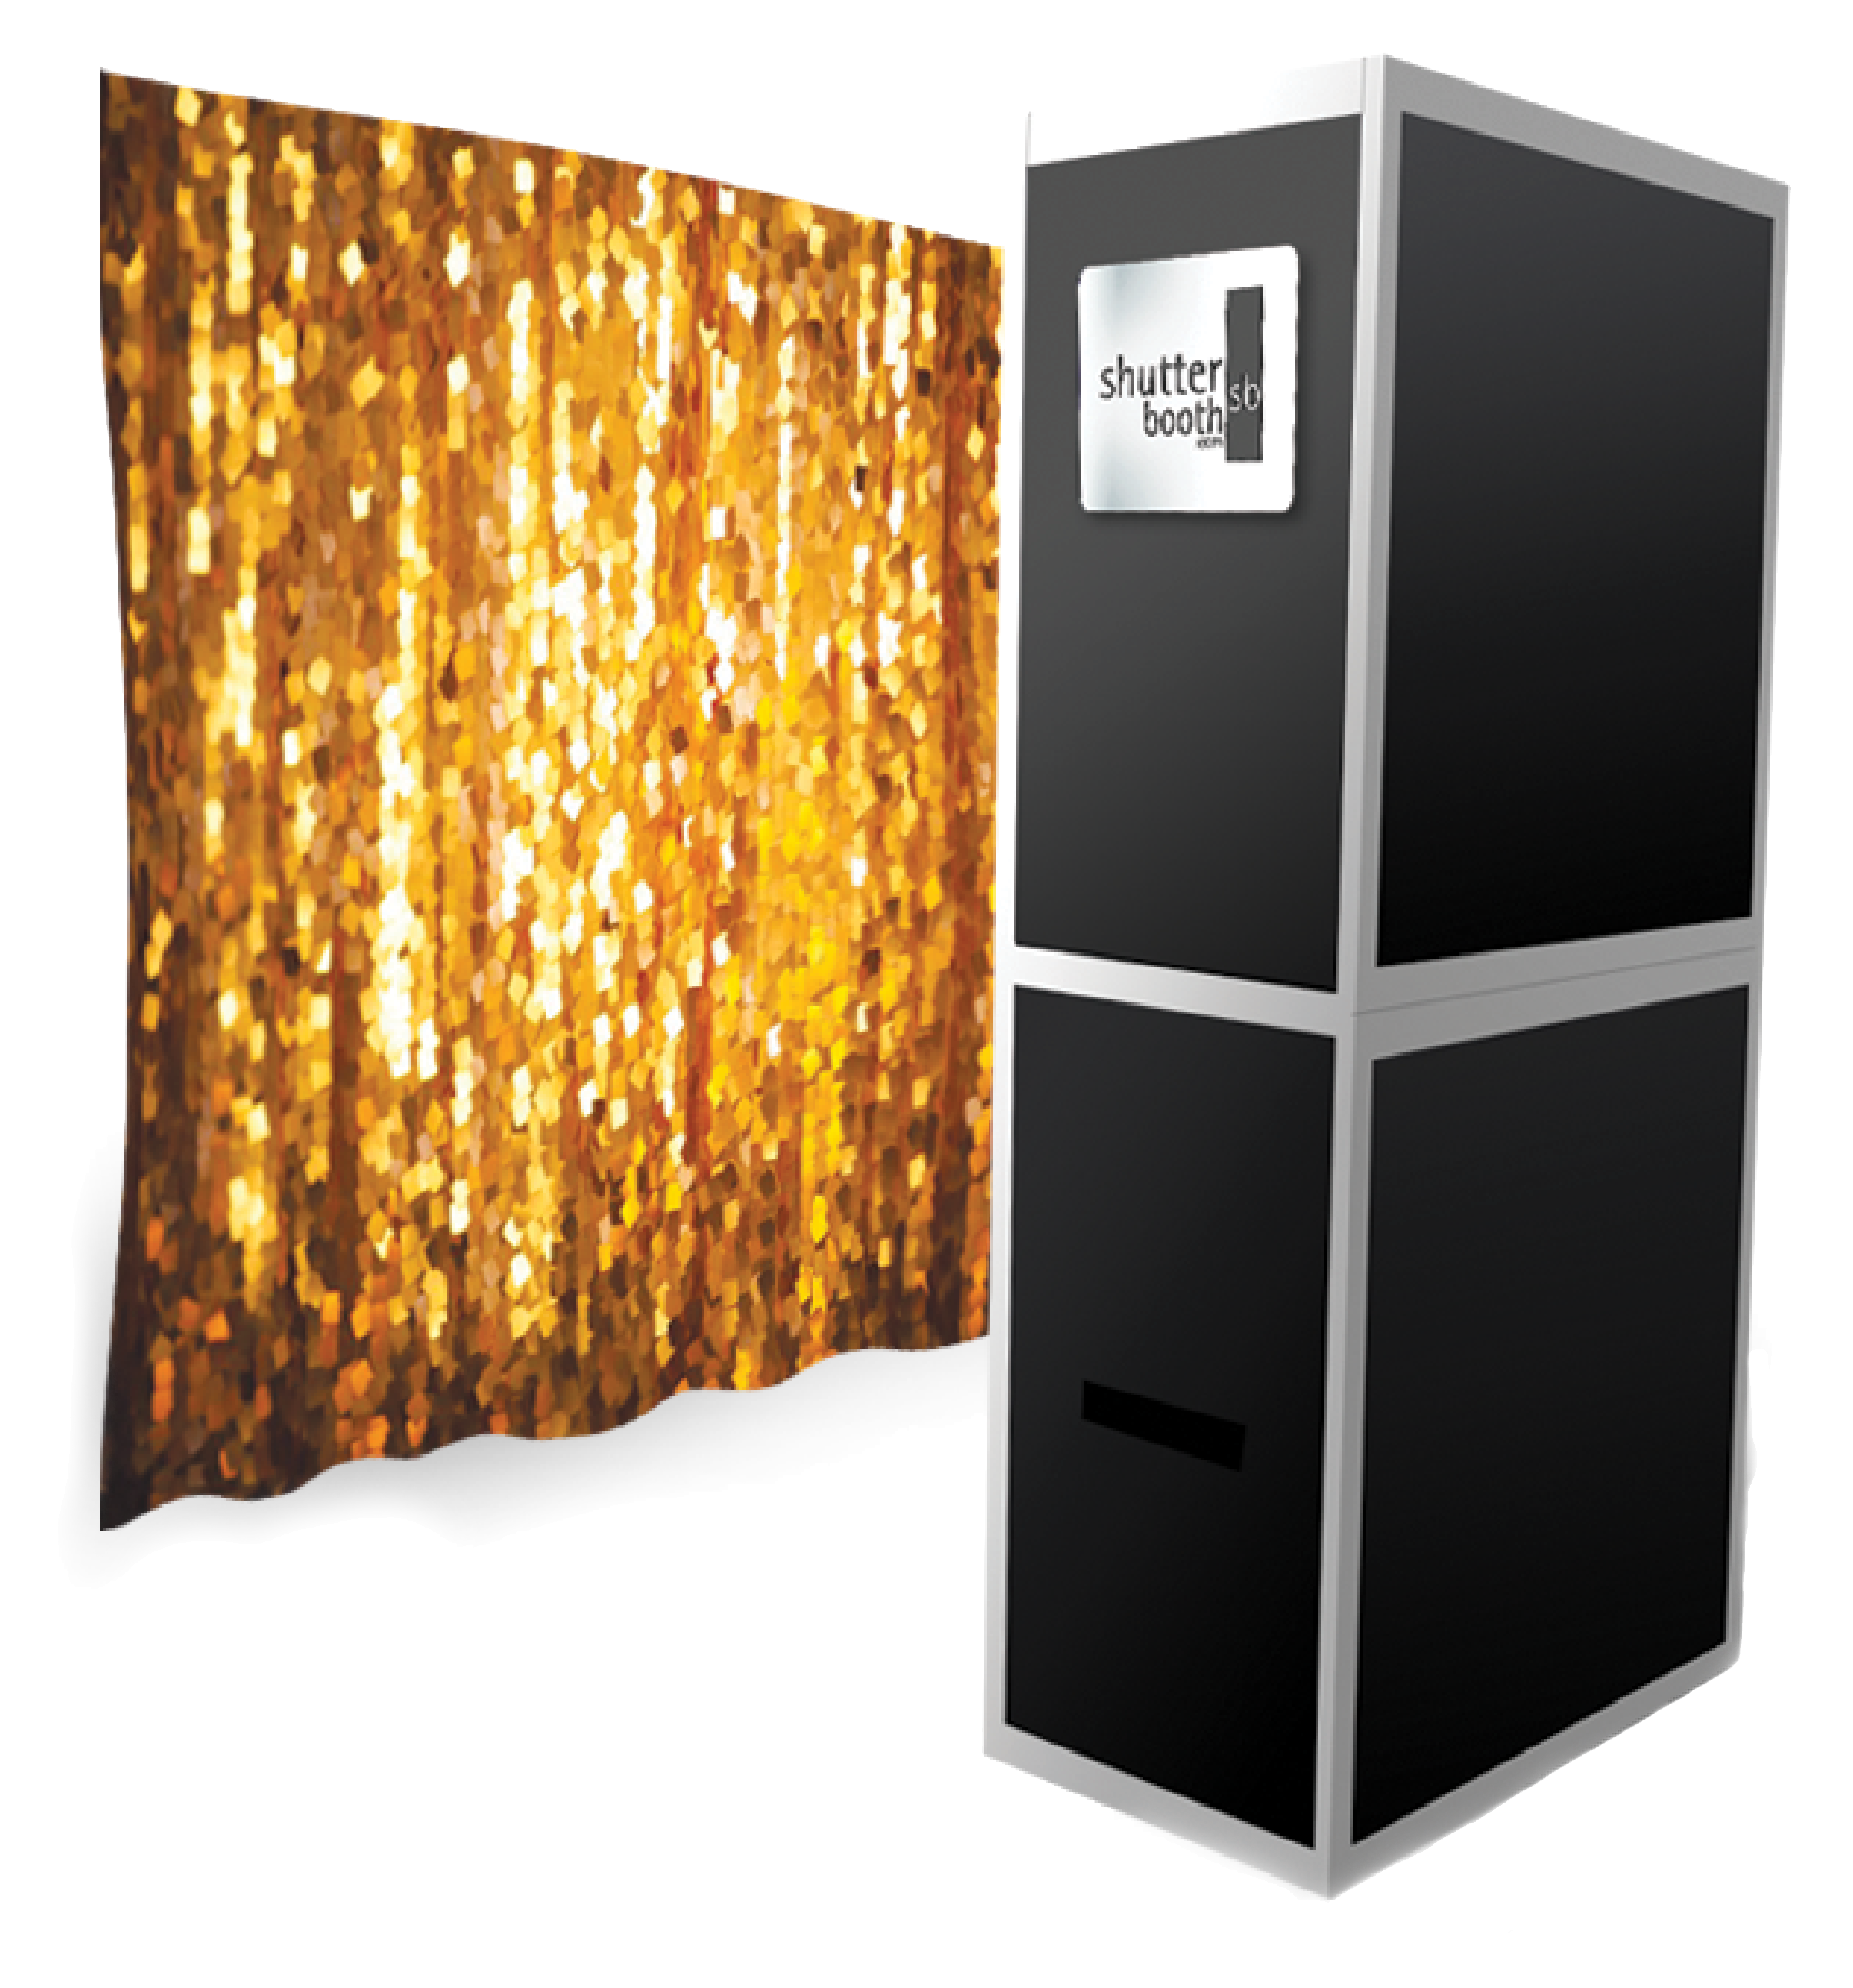 ShutterBooth Open Kiosk Stand Alone Marketing